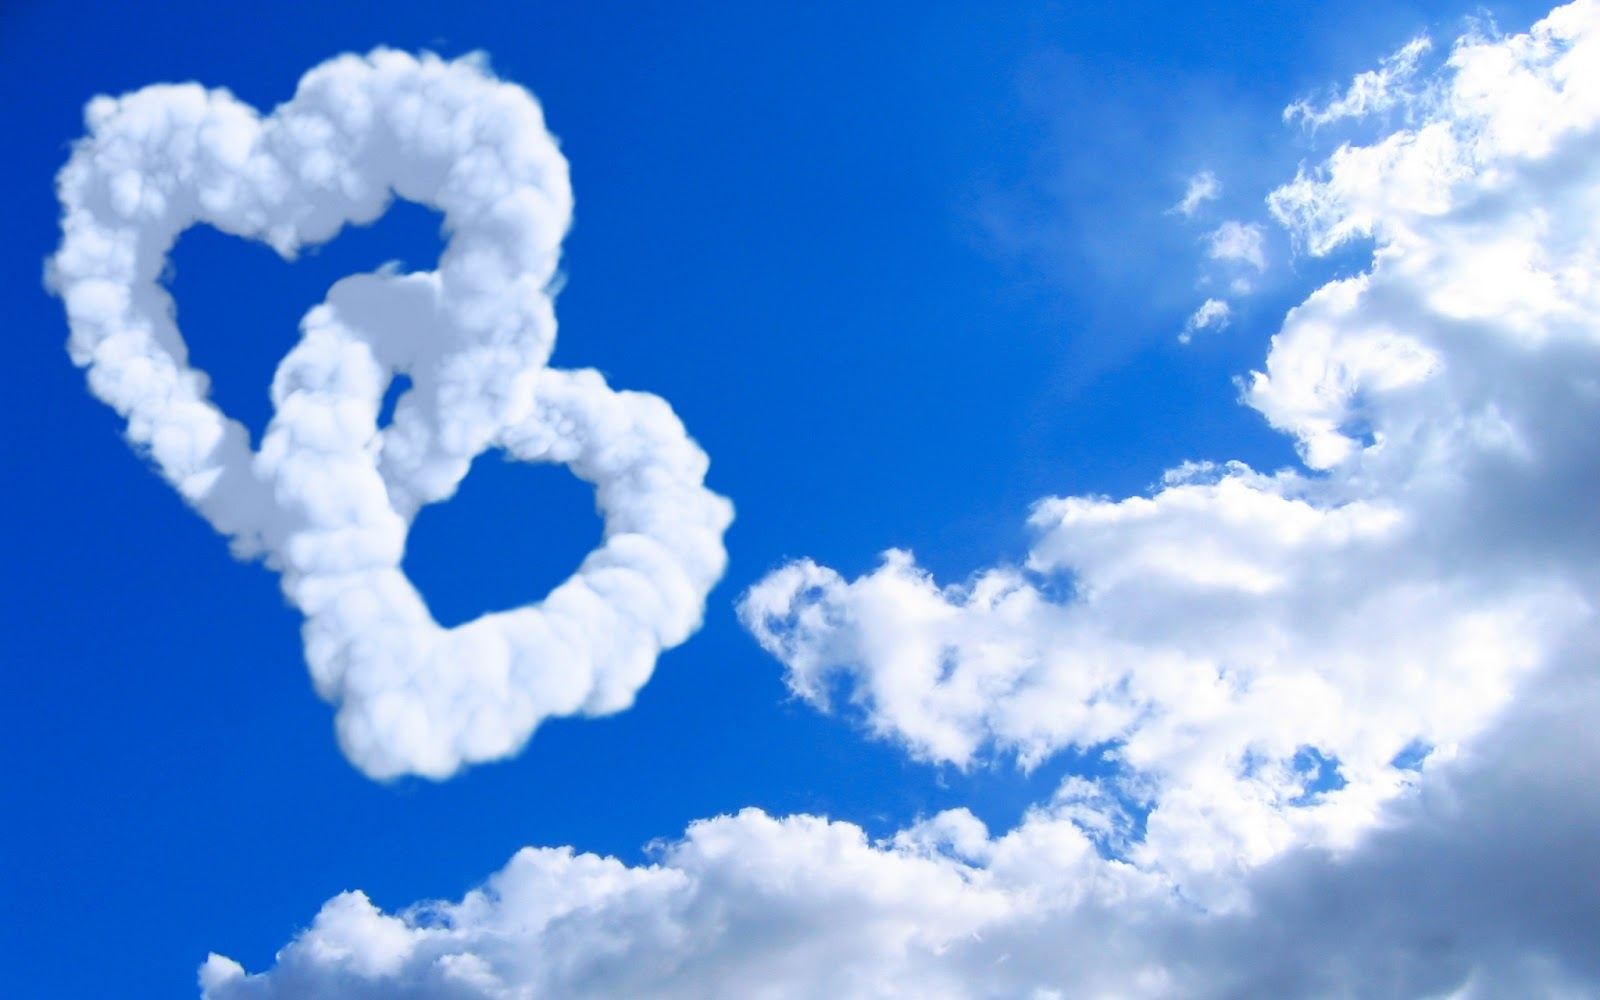 No Love Wallpaper: 3d Love With Clouds Wallpaper, Wallpaper For Desktop